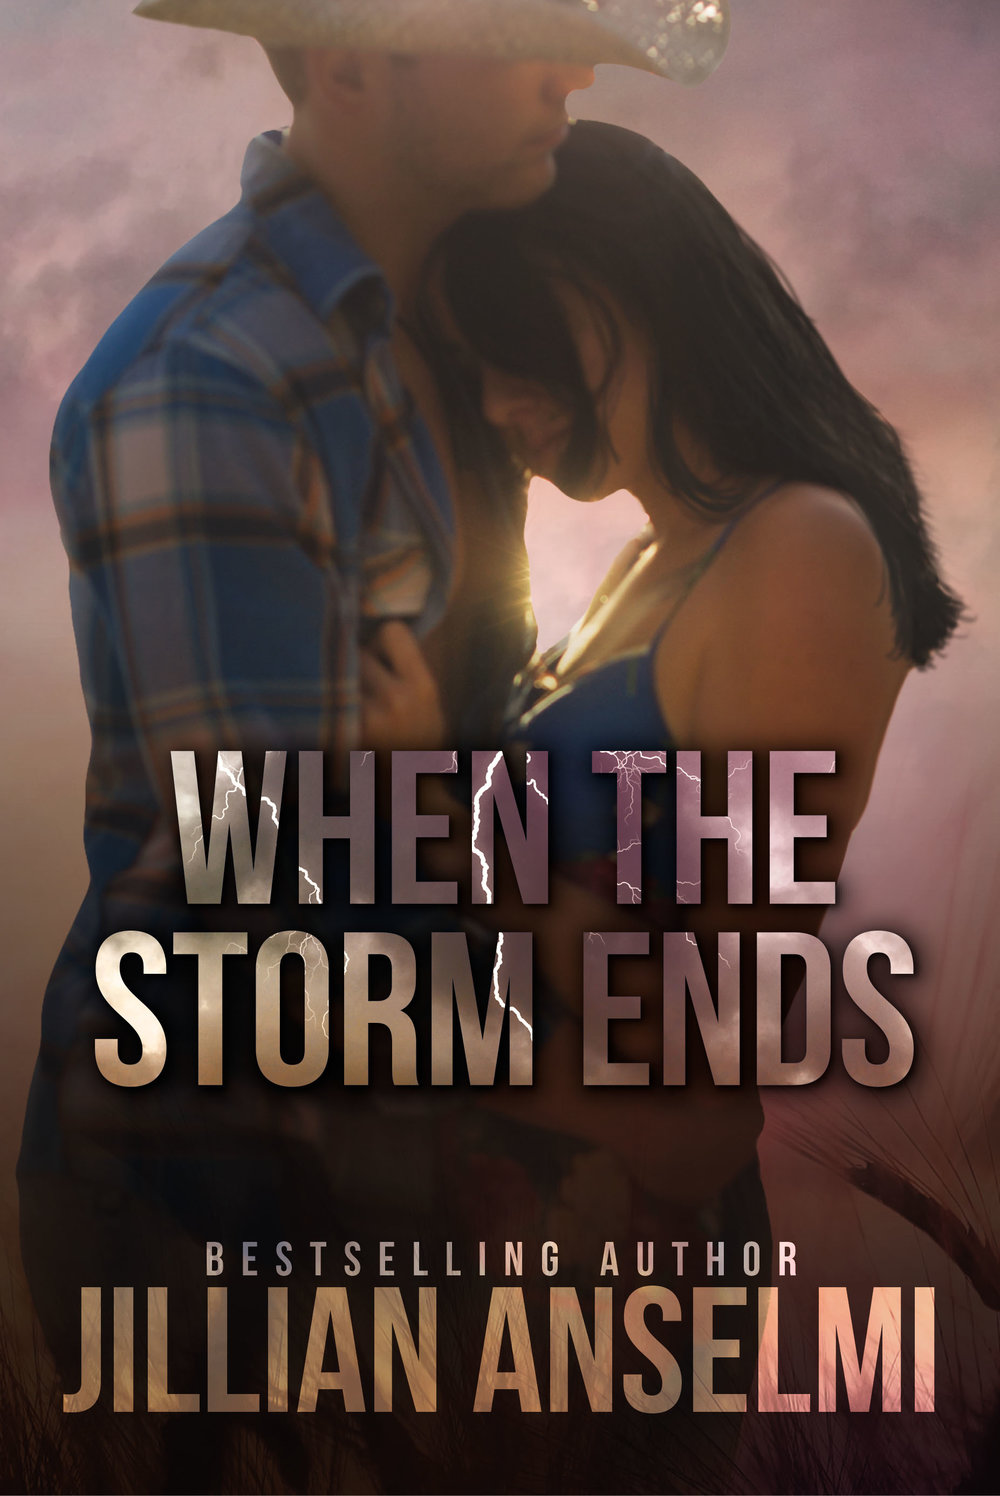 IF You Want to Start From the Beginning.....  ALSO AVAILABLE BY JILLIAN ANSELMI  When the Storm Ends    US:  http://amzn.to/2qBYb2n  UK:  http://amzn.to/2so5OGd  CA:  http://amzn.to/2rpTF6p  AU:  http://amzn.to/2qC7hrP  B&N:  http://bit.ly/2rFUjh6  Kobo:  http://bit.ly/2rFFNFW   iBooks:  http://apple.co/2qH4pJy